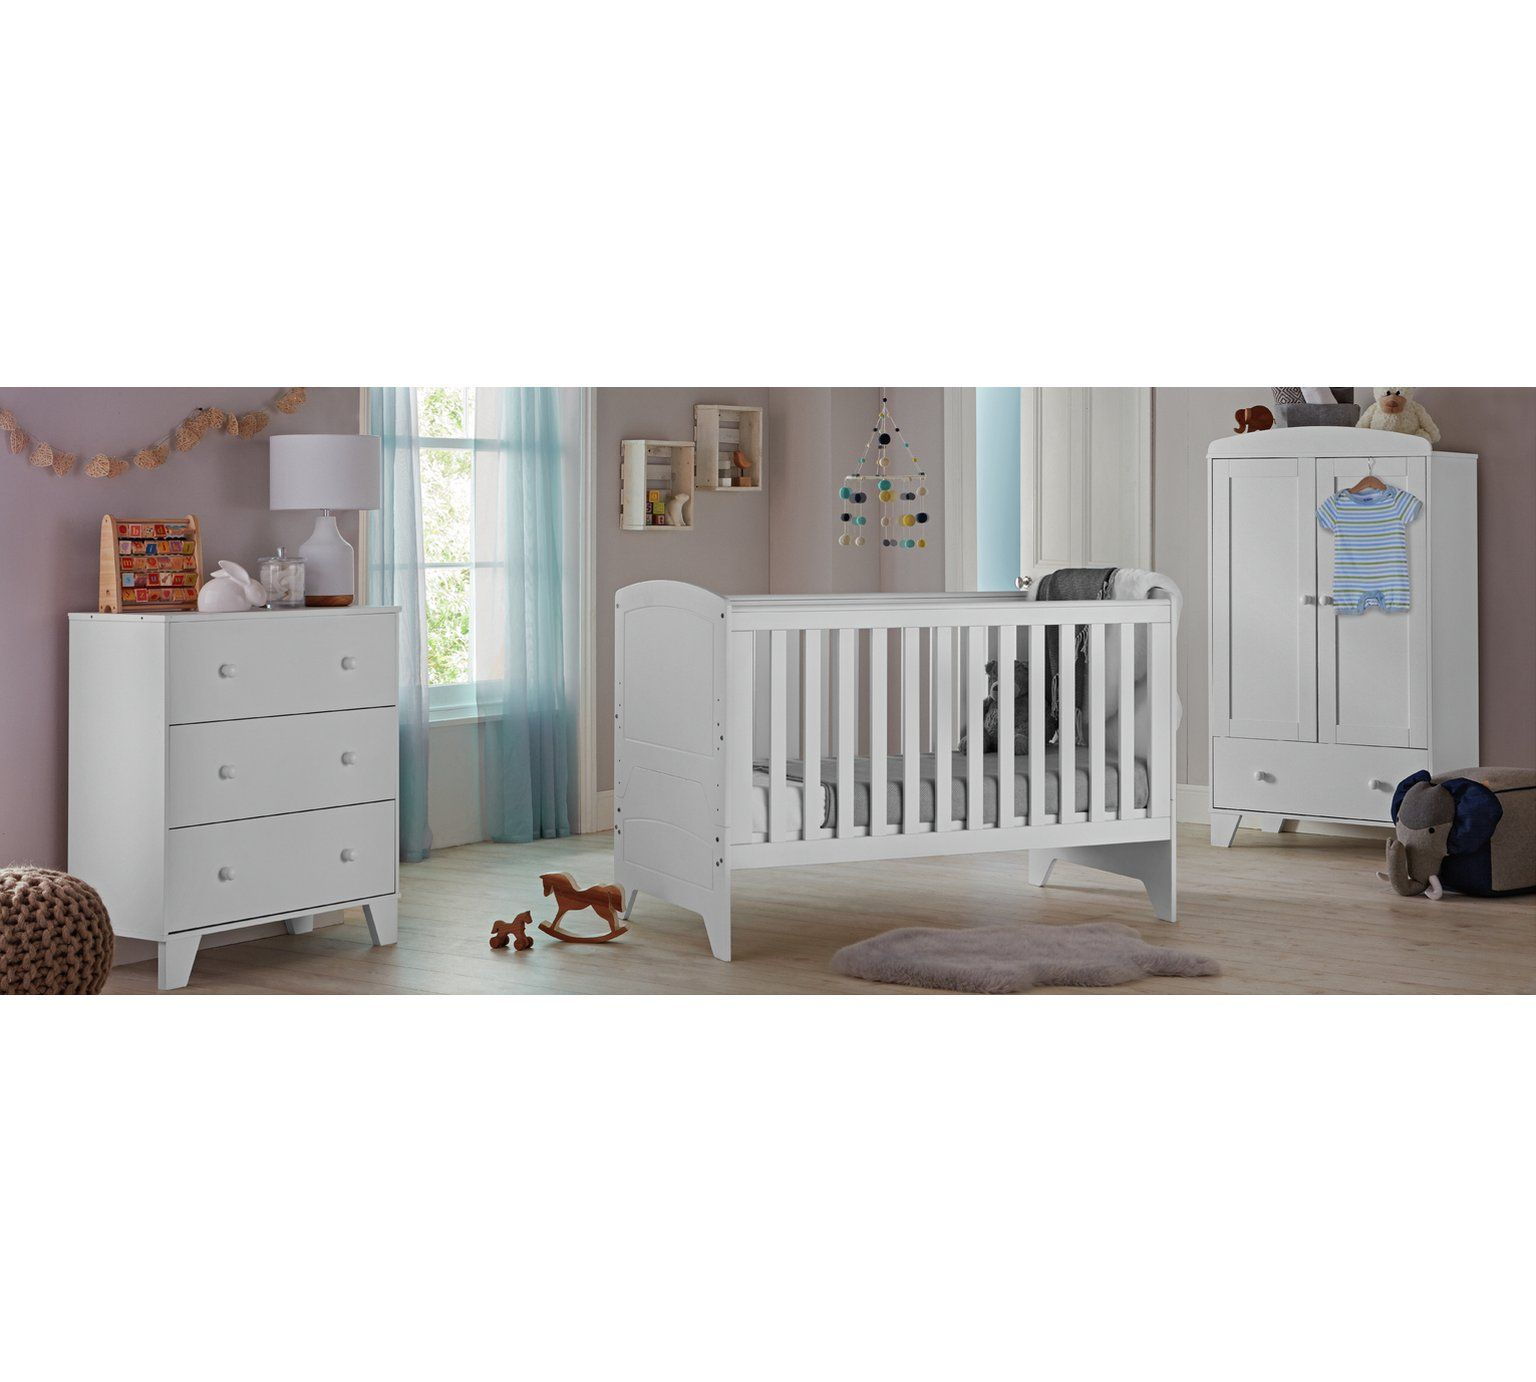 Cuggl Oxford 3 Piece Furniture Set White At Argos Co